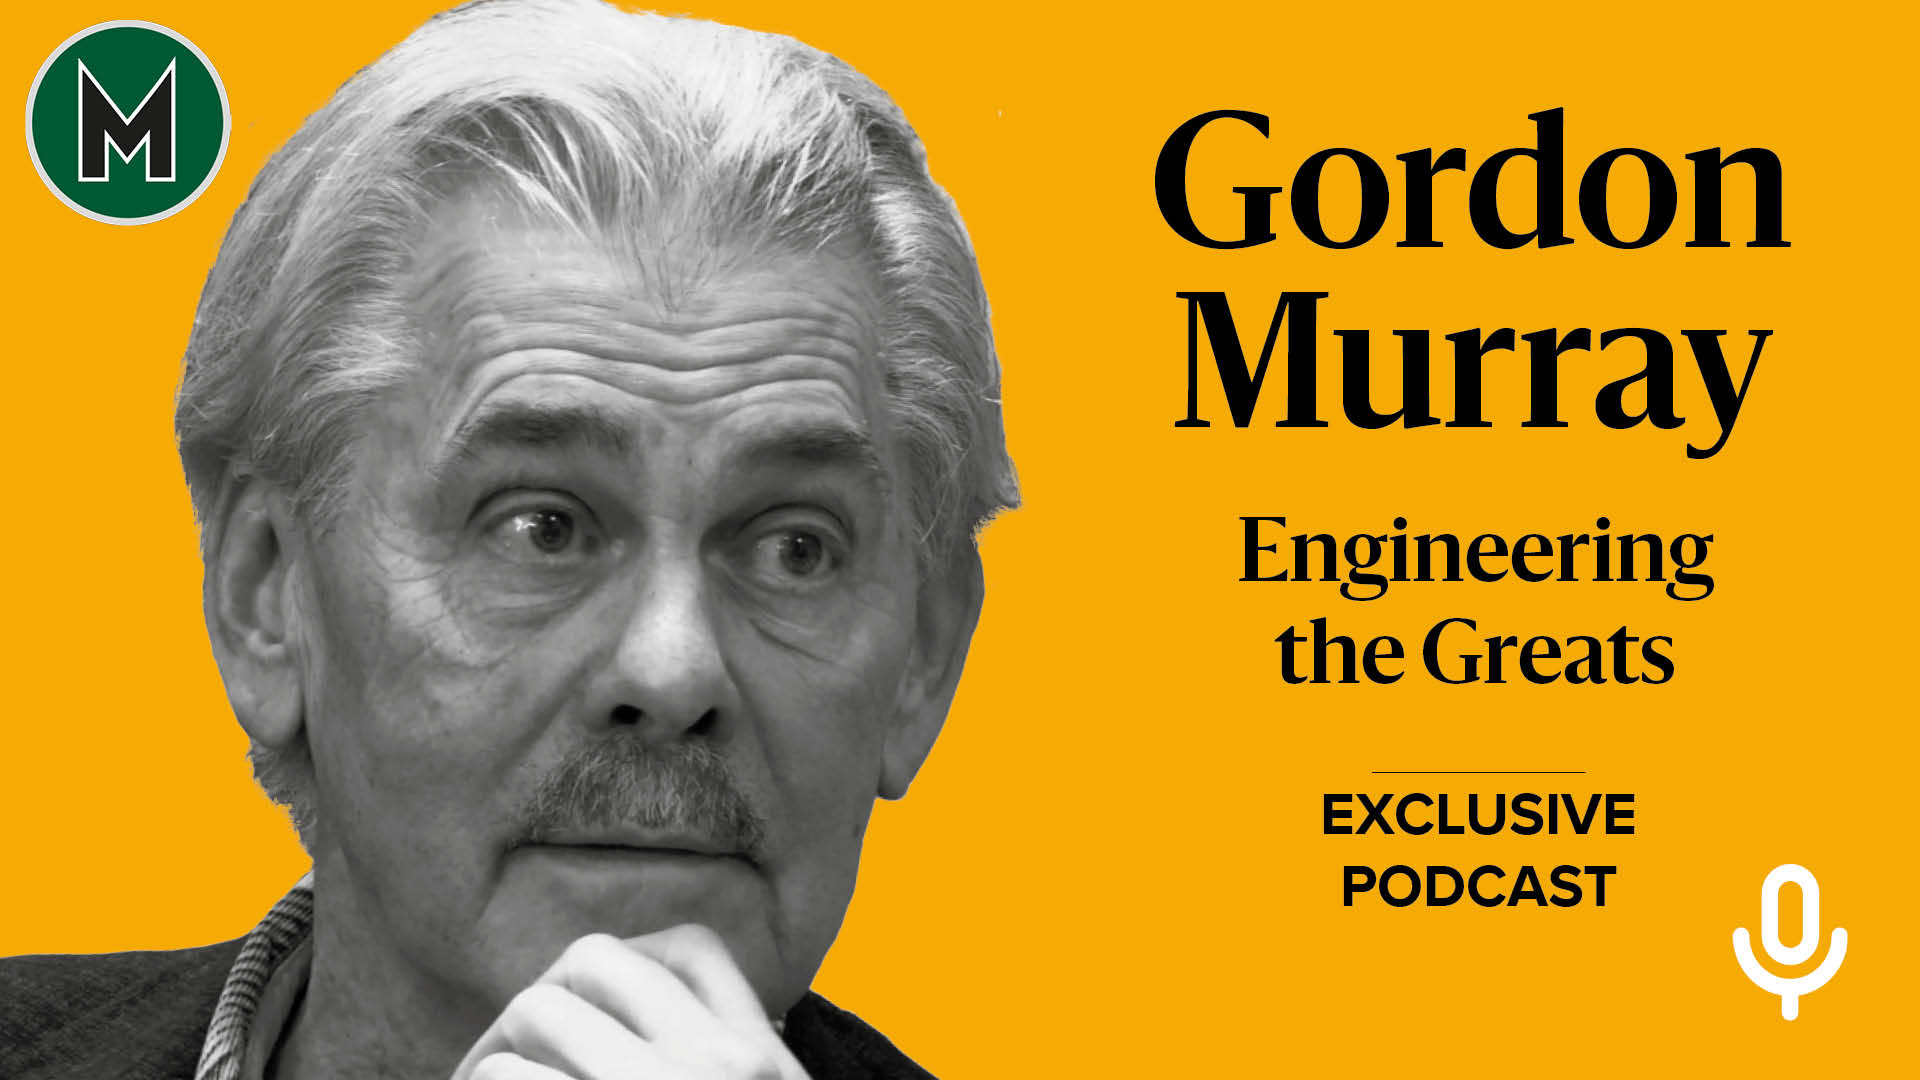 Podcast: Gordon Murray, Engineering the Greats